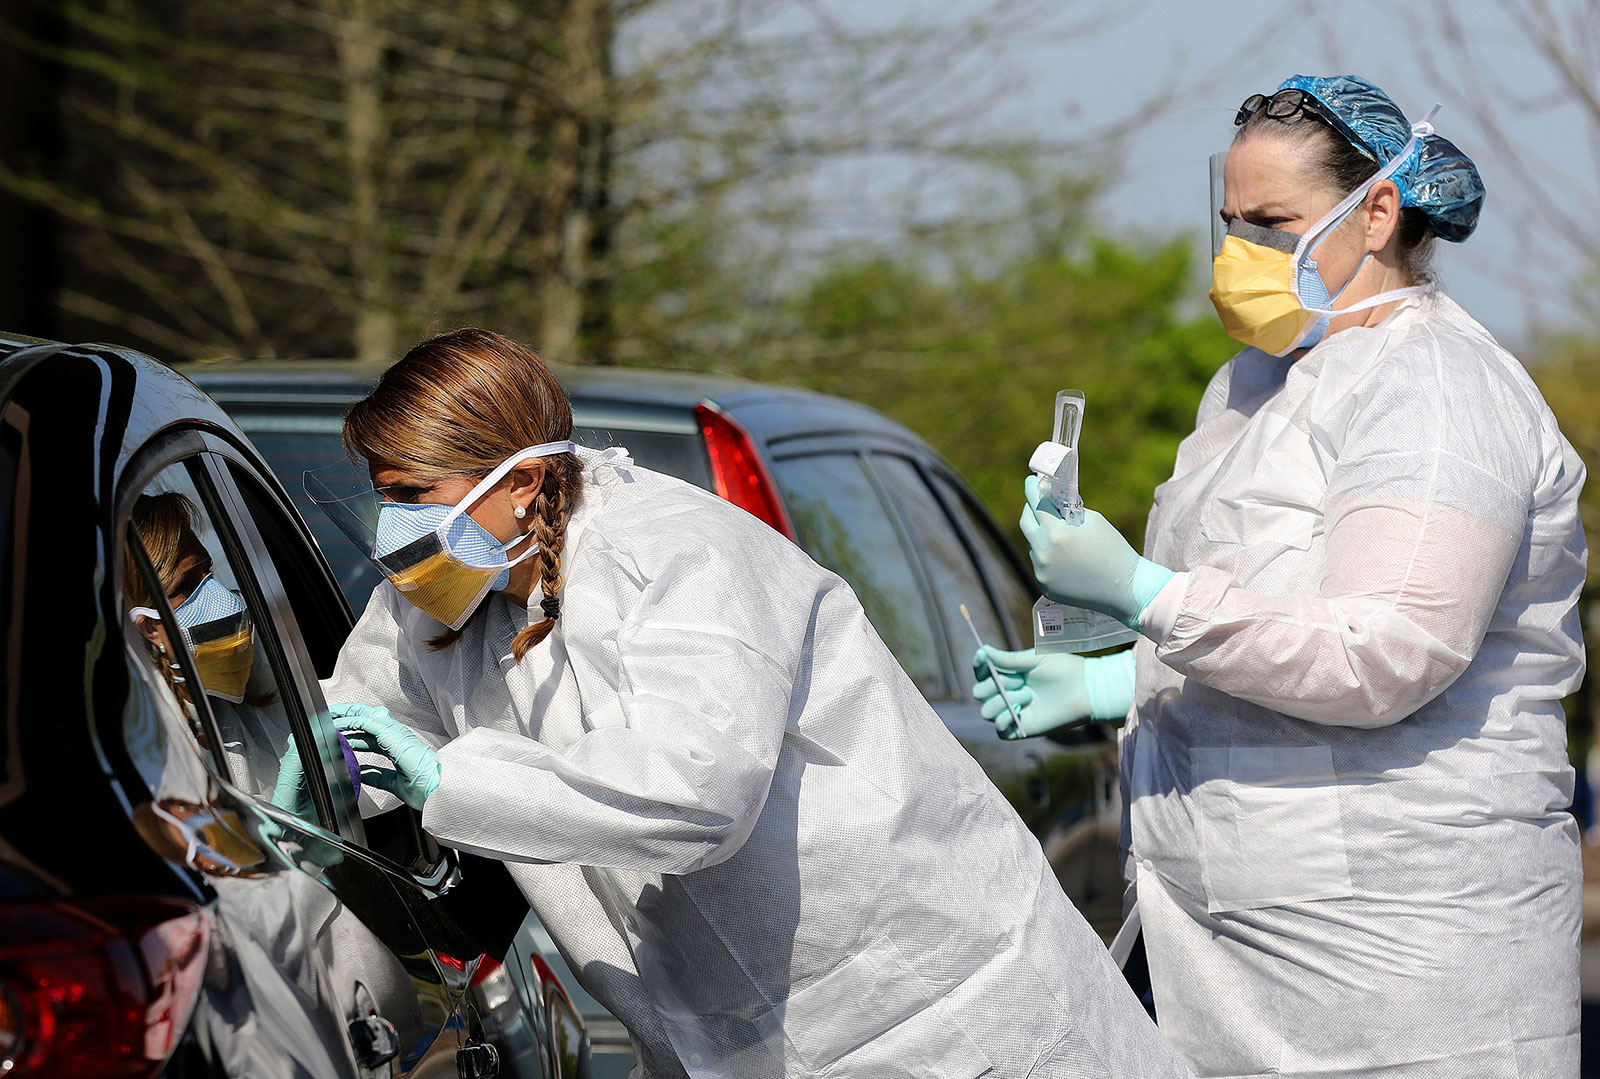 Nurse Mandy Stuckey reaches into a vehicle to administer a coronavirus test at a drive-through testing center in North Little Rock, Arkansas.